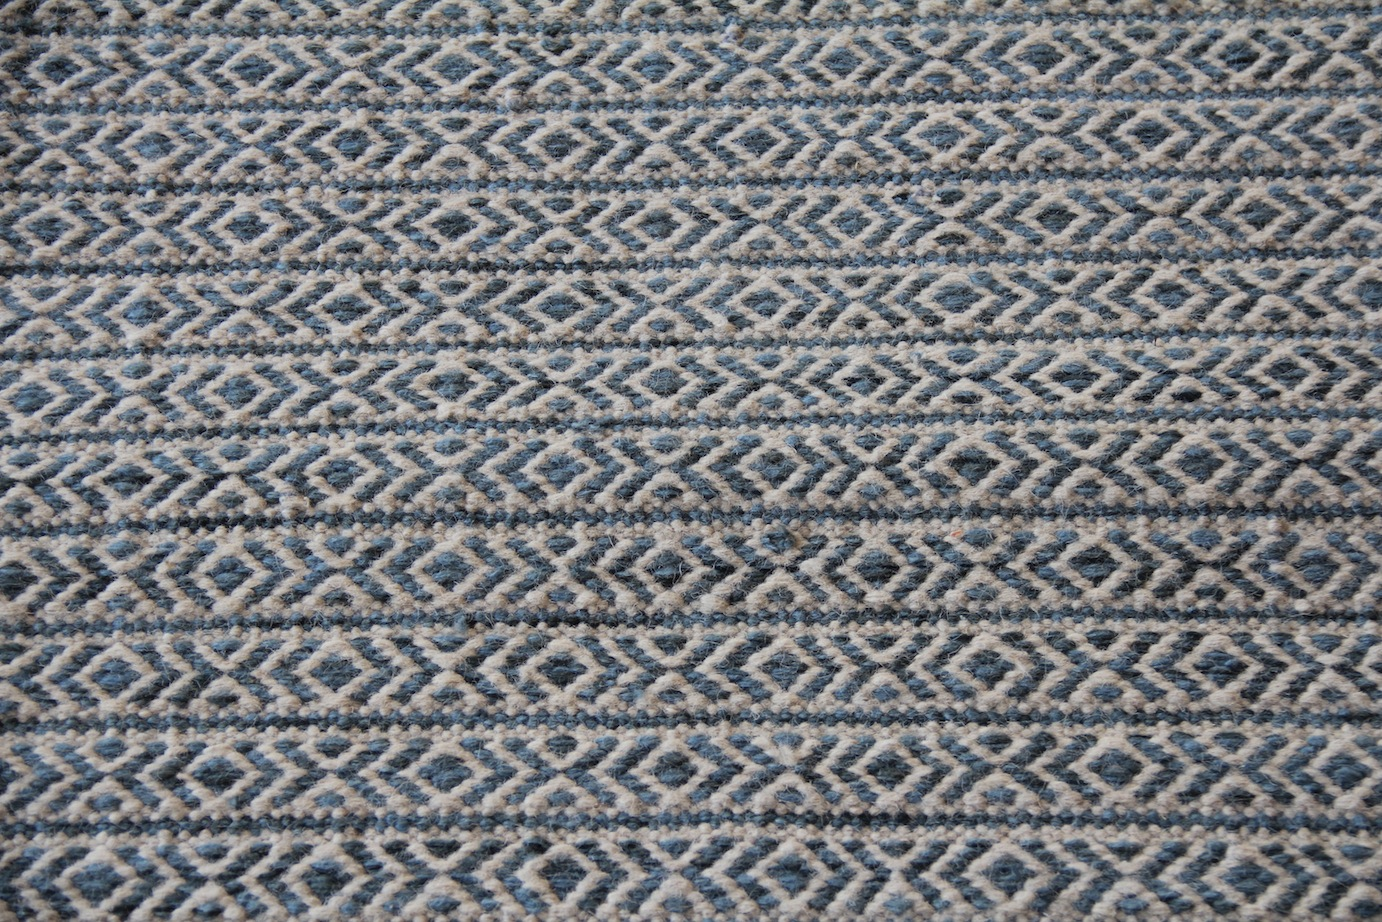 mosaic may be ordered in runners and custom sizes stop by kush and check out our samples full size rugs are on the way